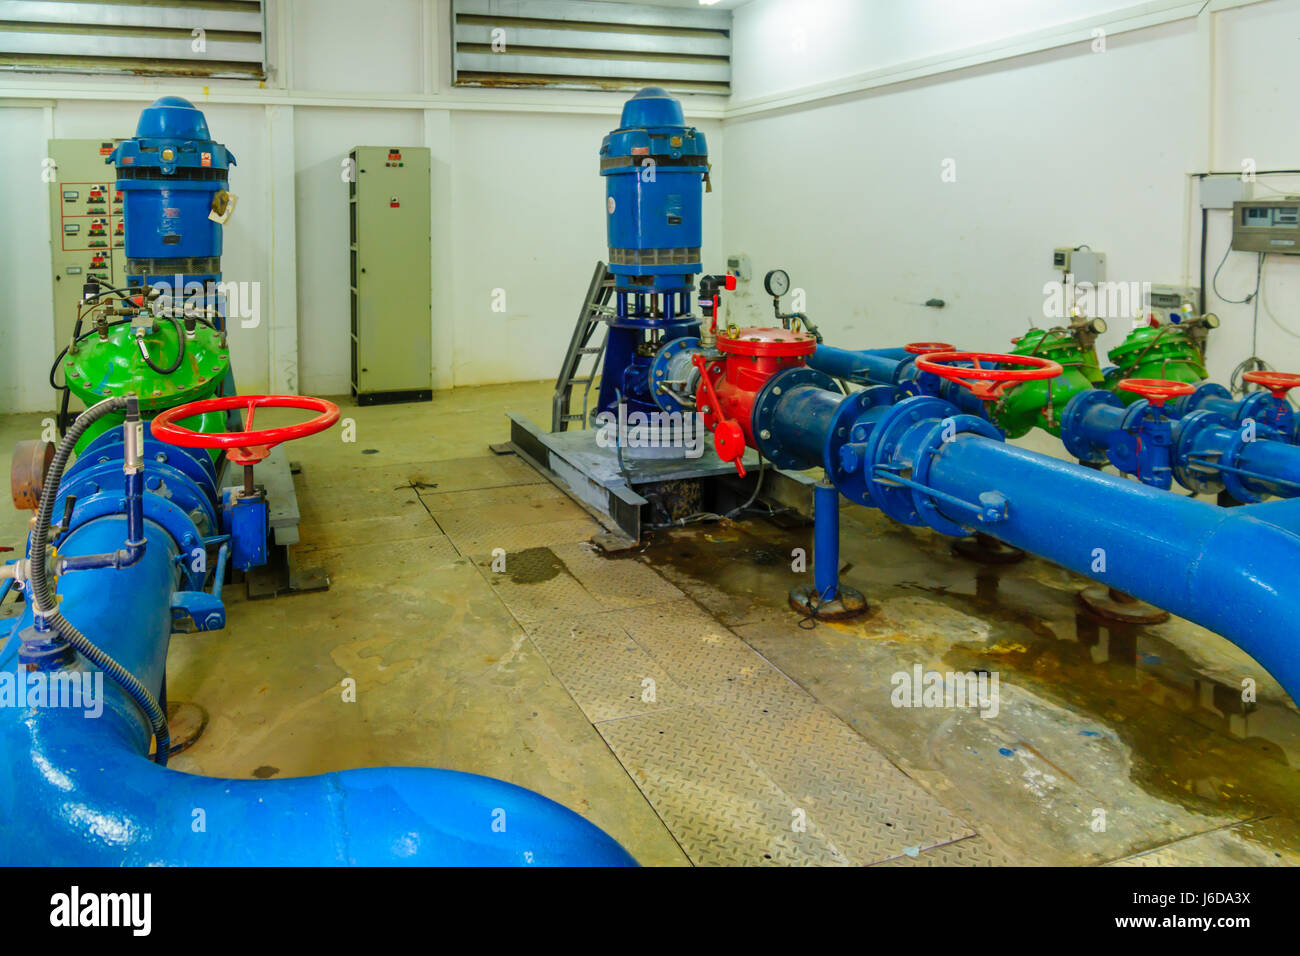 TEL-AVIV, ISRAEL - MAY 18, 2017: A pumping station that provide proper water pressure, part of the water system - Stock Image